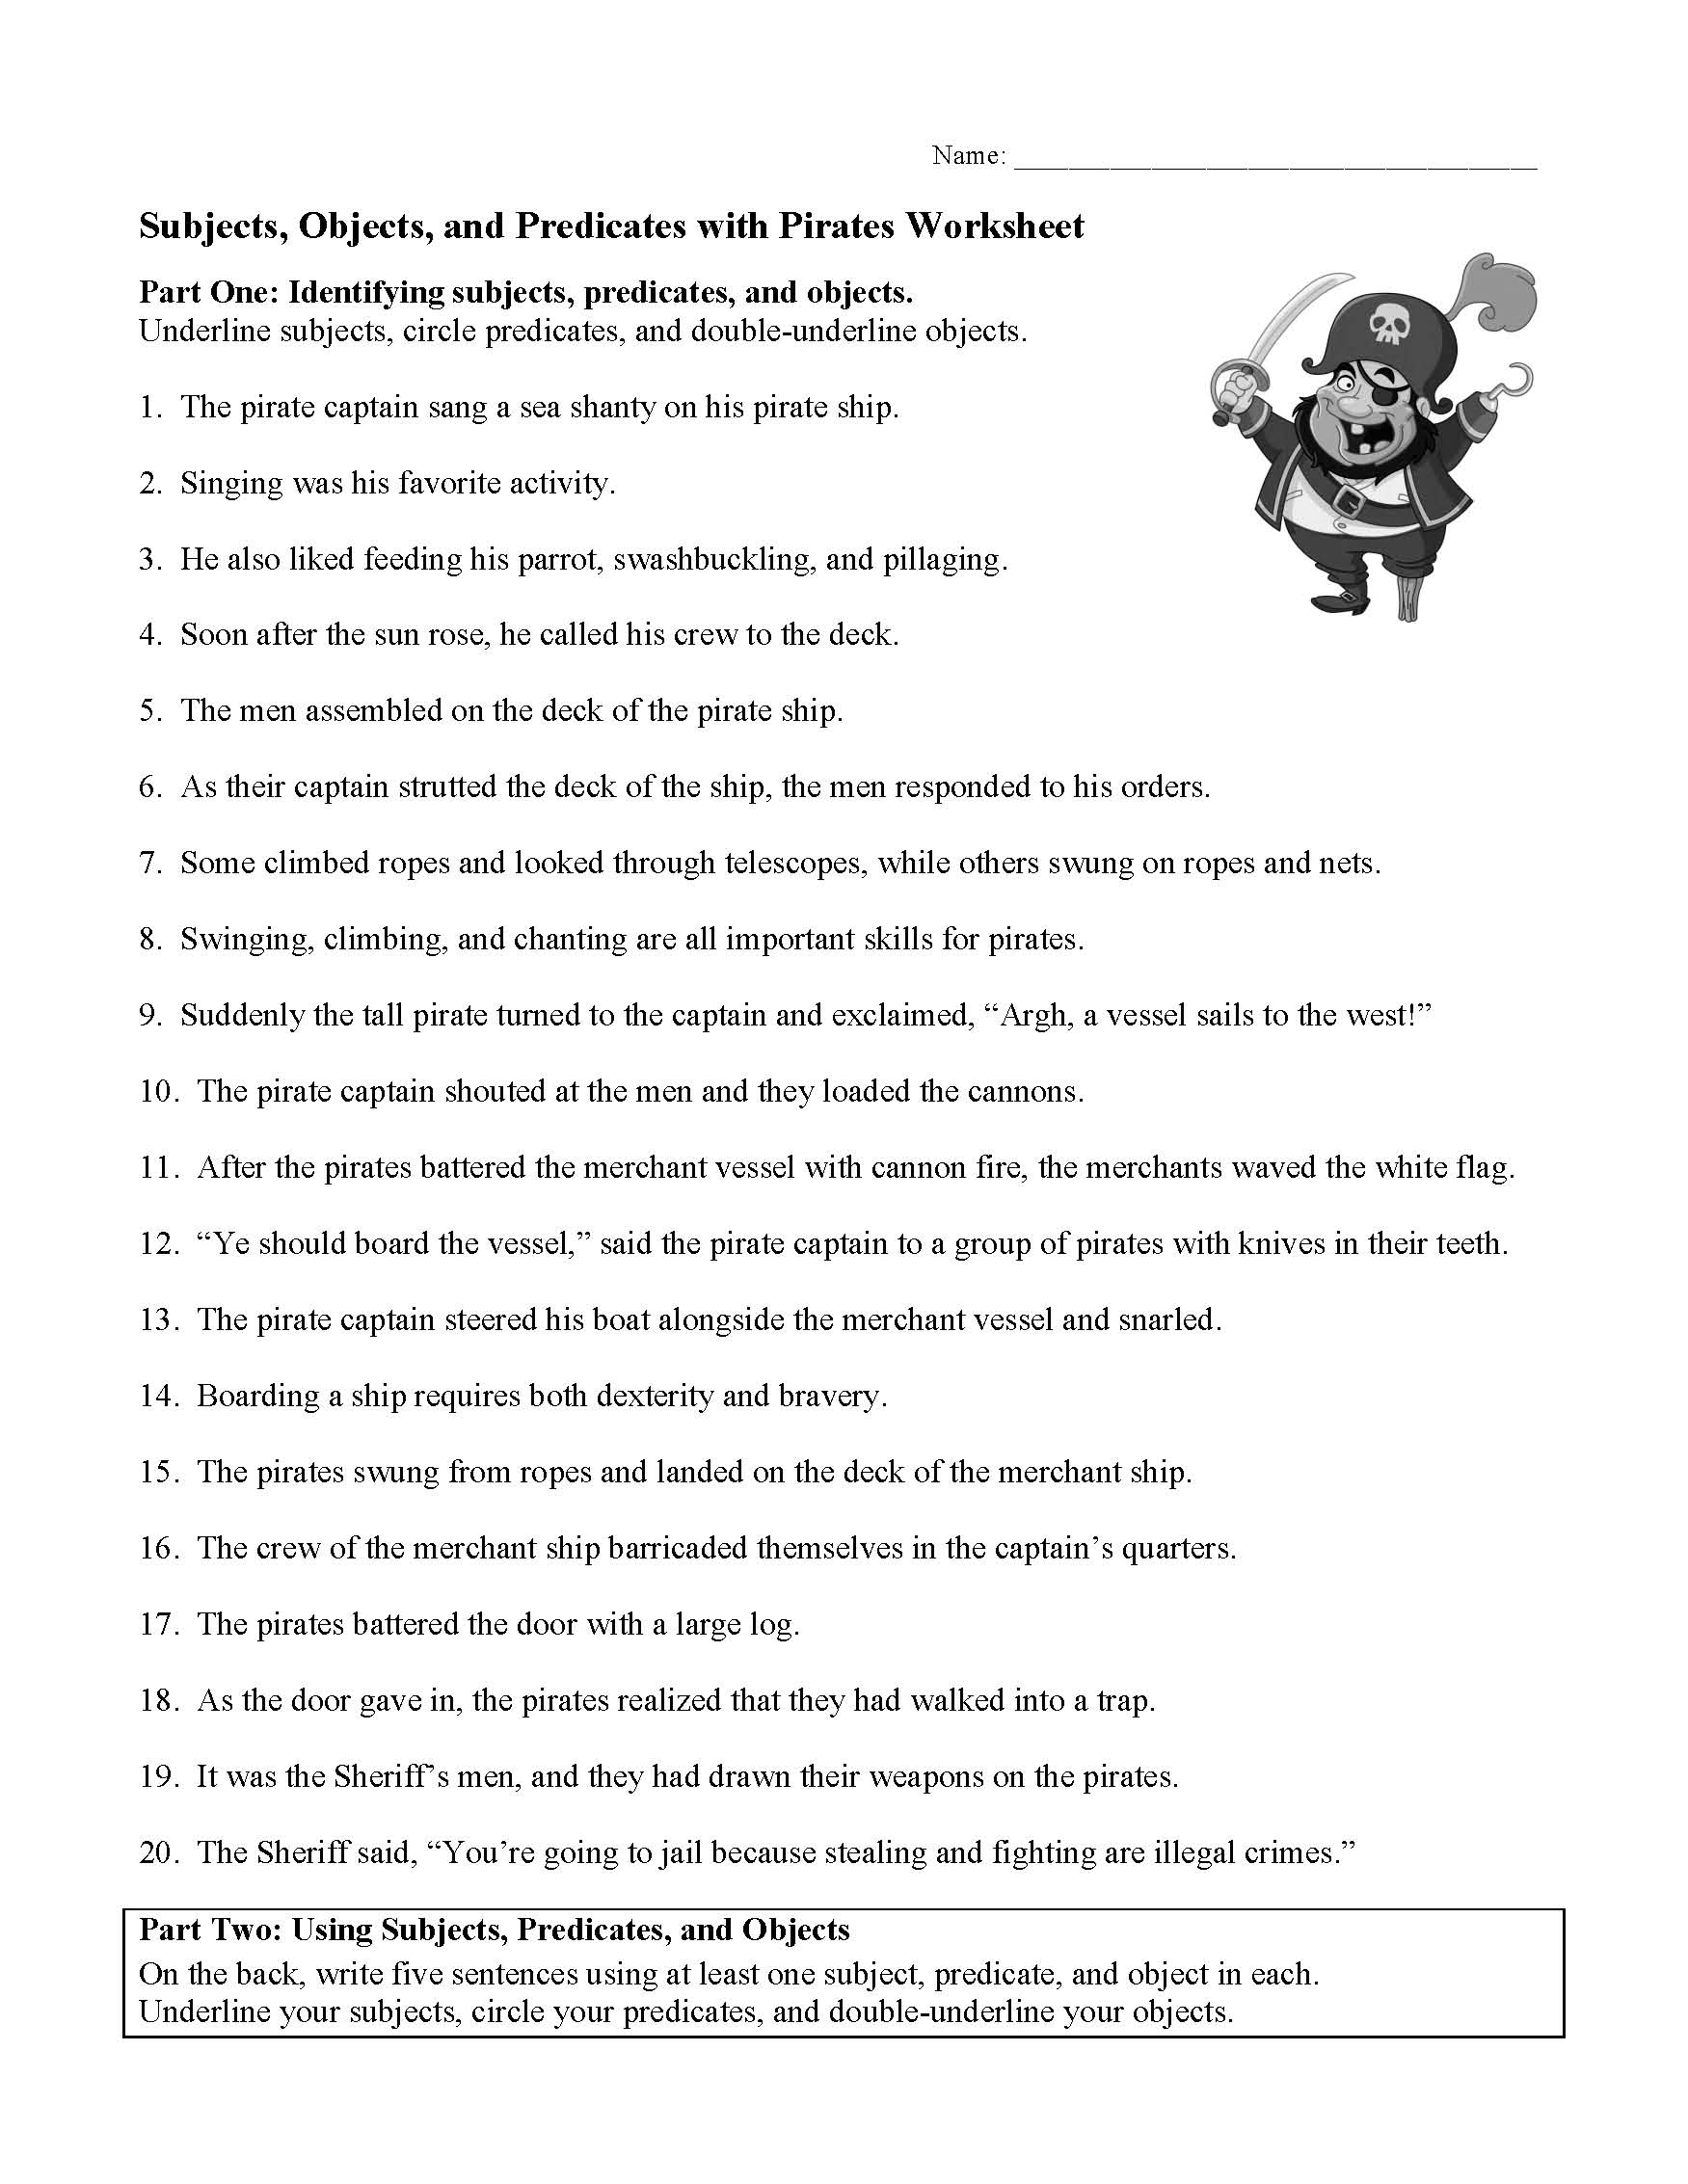 This is a preview image of the Subjects, Objects, and Predicates with Pirates Worksheet.